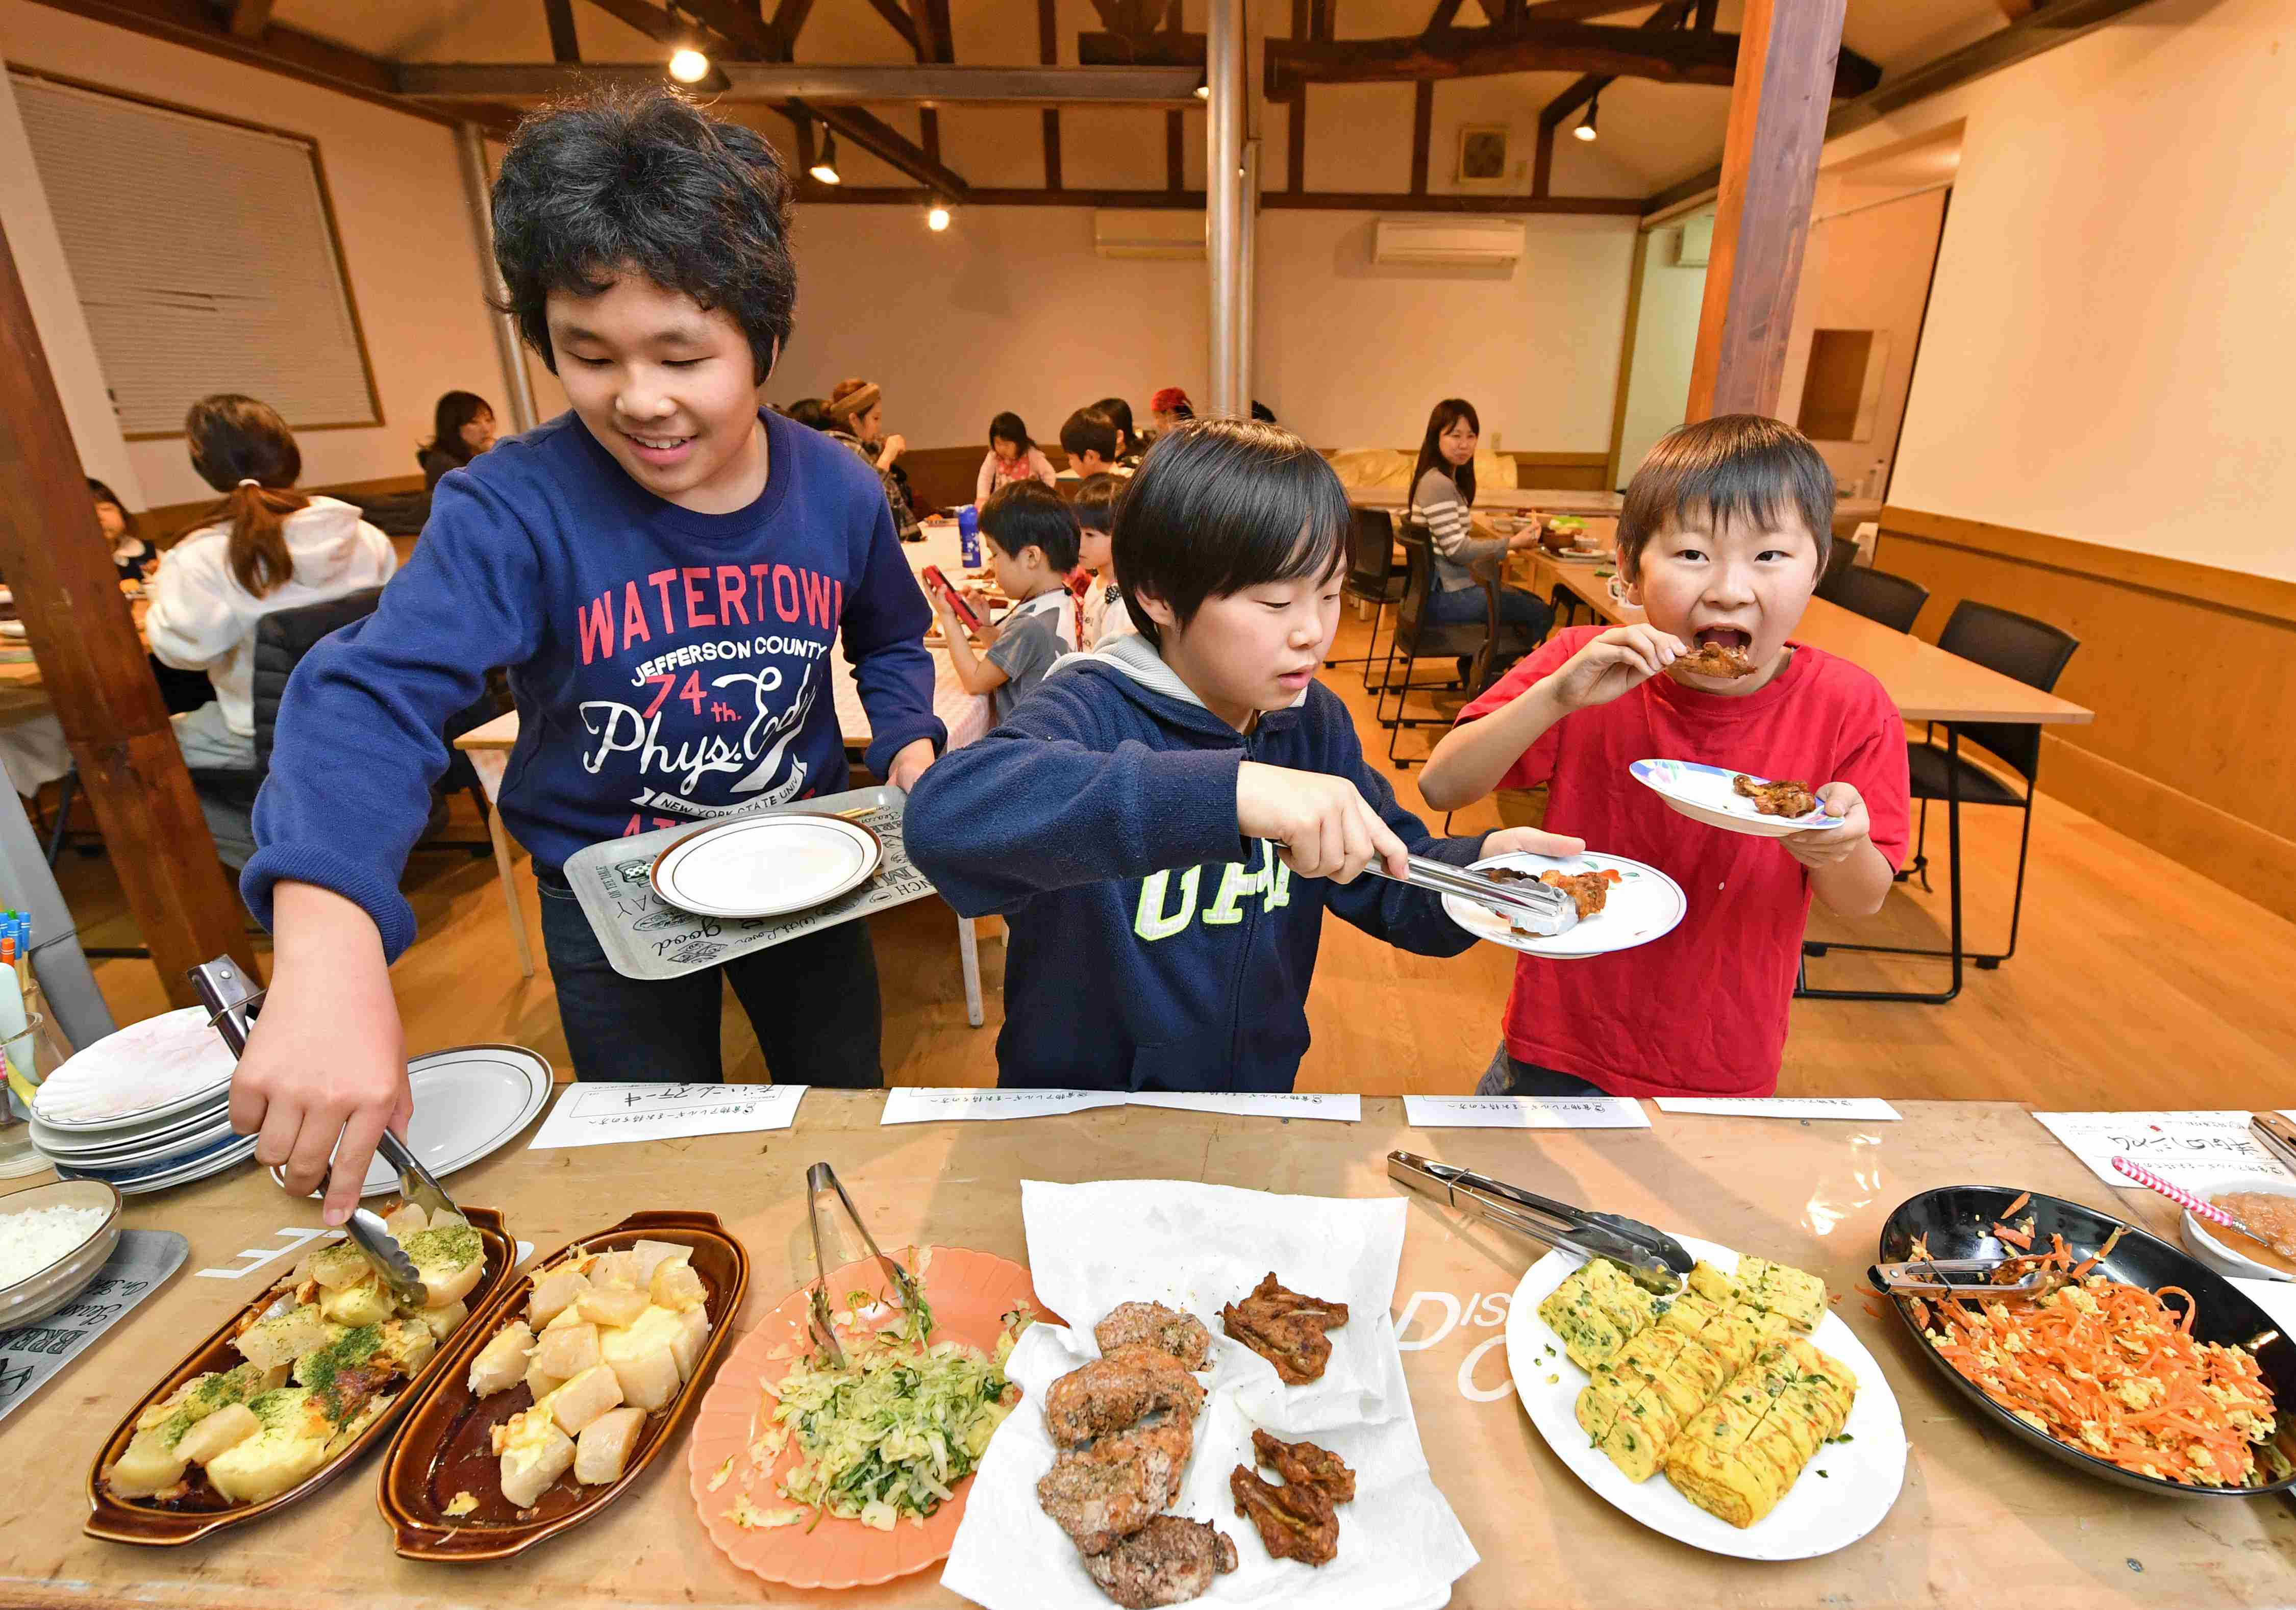 By Feeding the Needy, Ponopono's Place Gives Food Waste A New Mission12